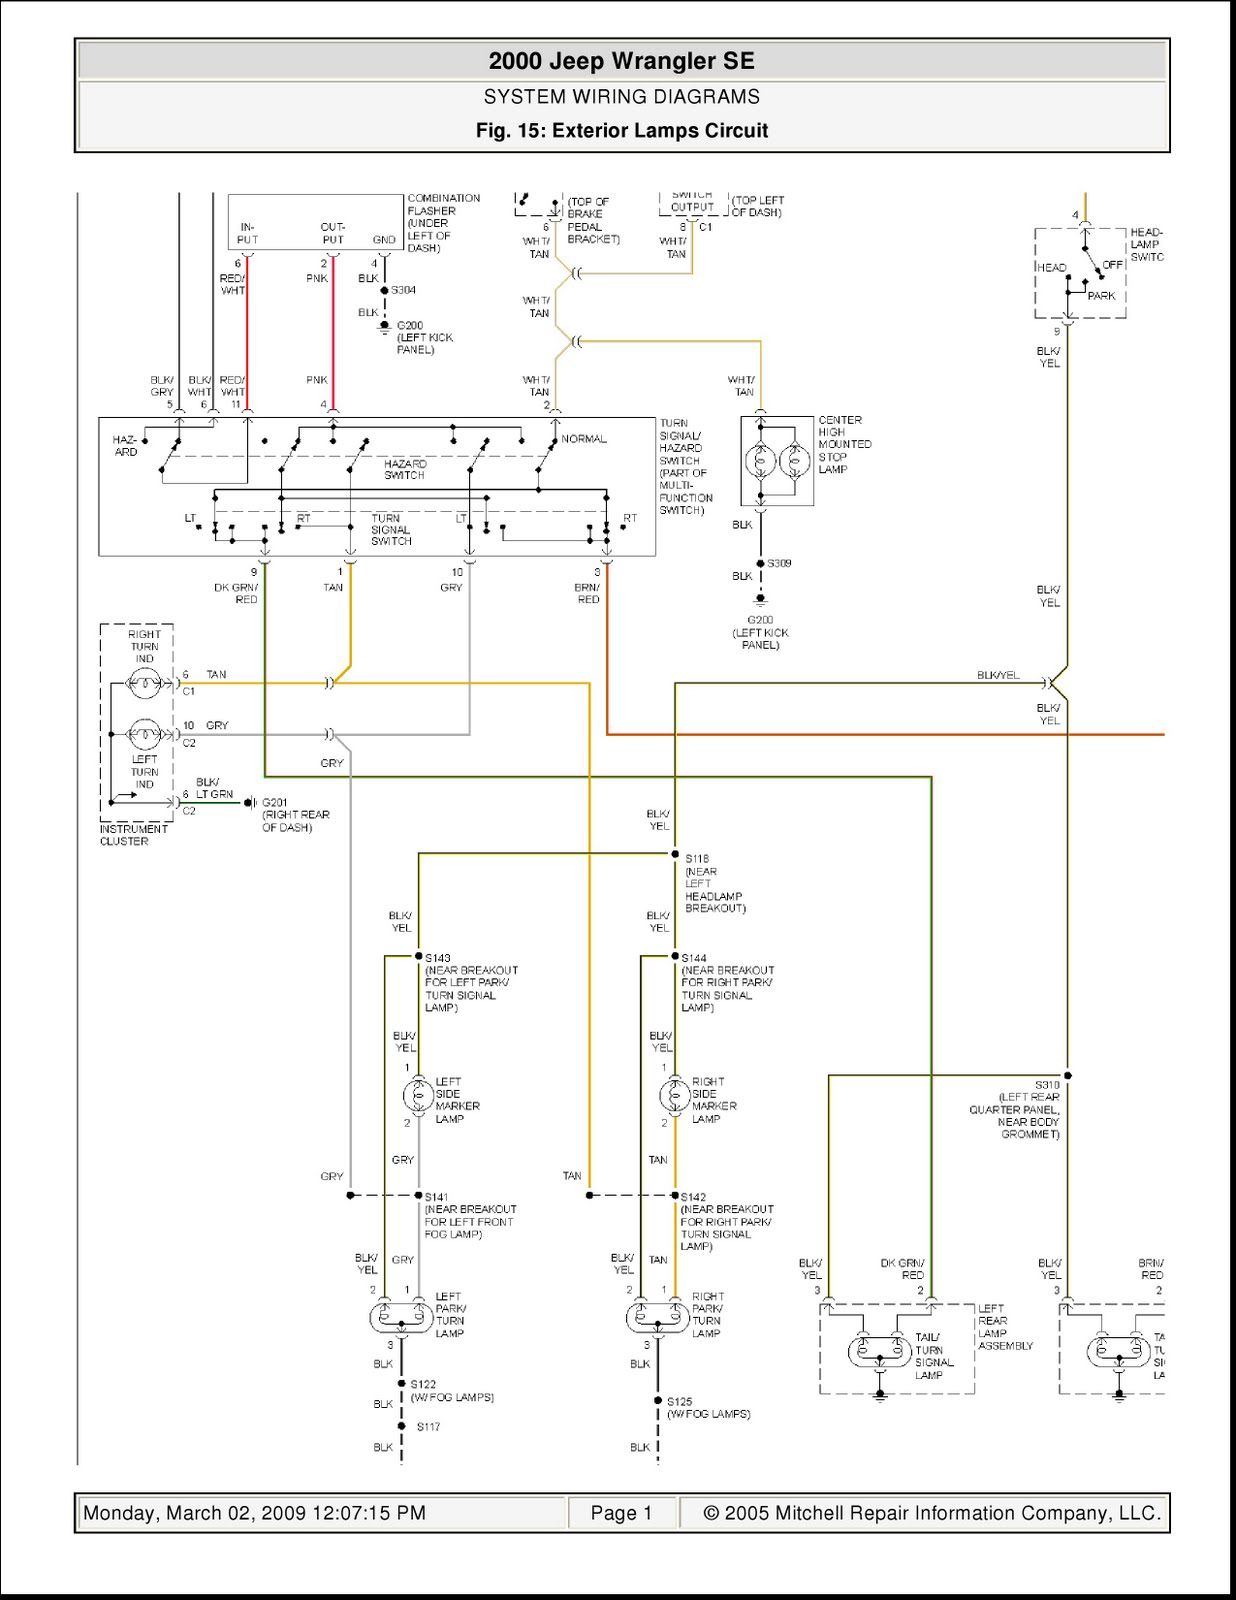 2000 Jeep Wrangler Wiring Diagram Real Ac Se System Diagrams Exterior Heater Headlight